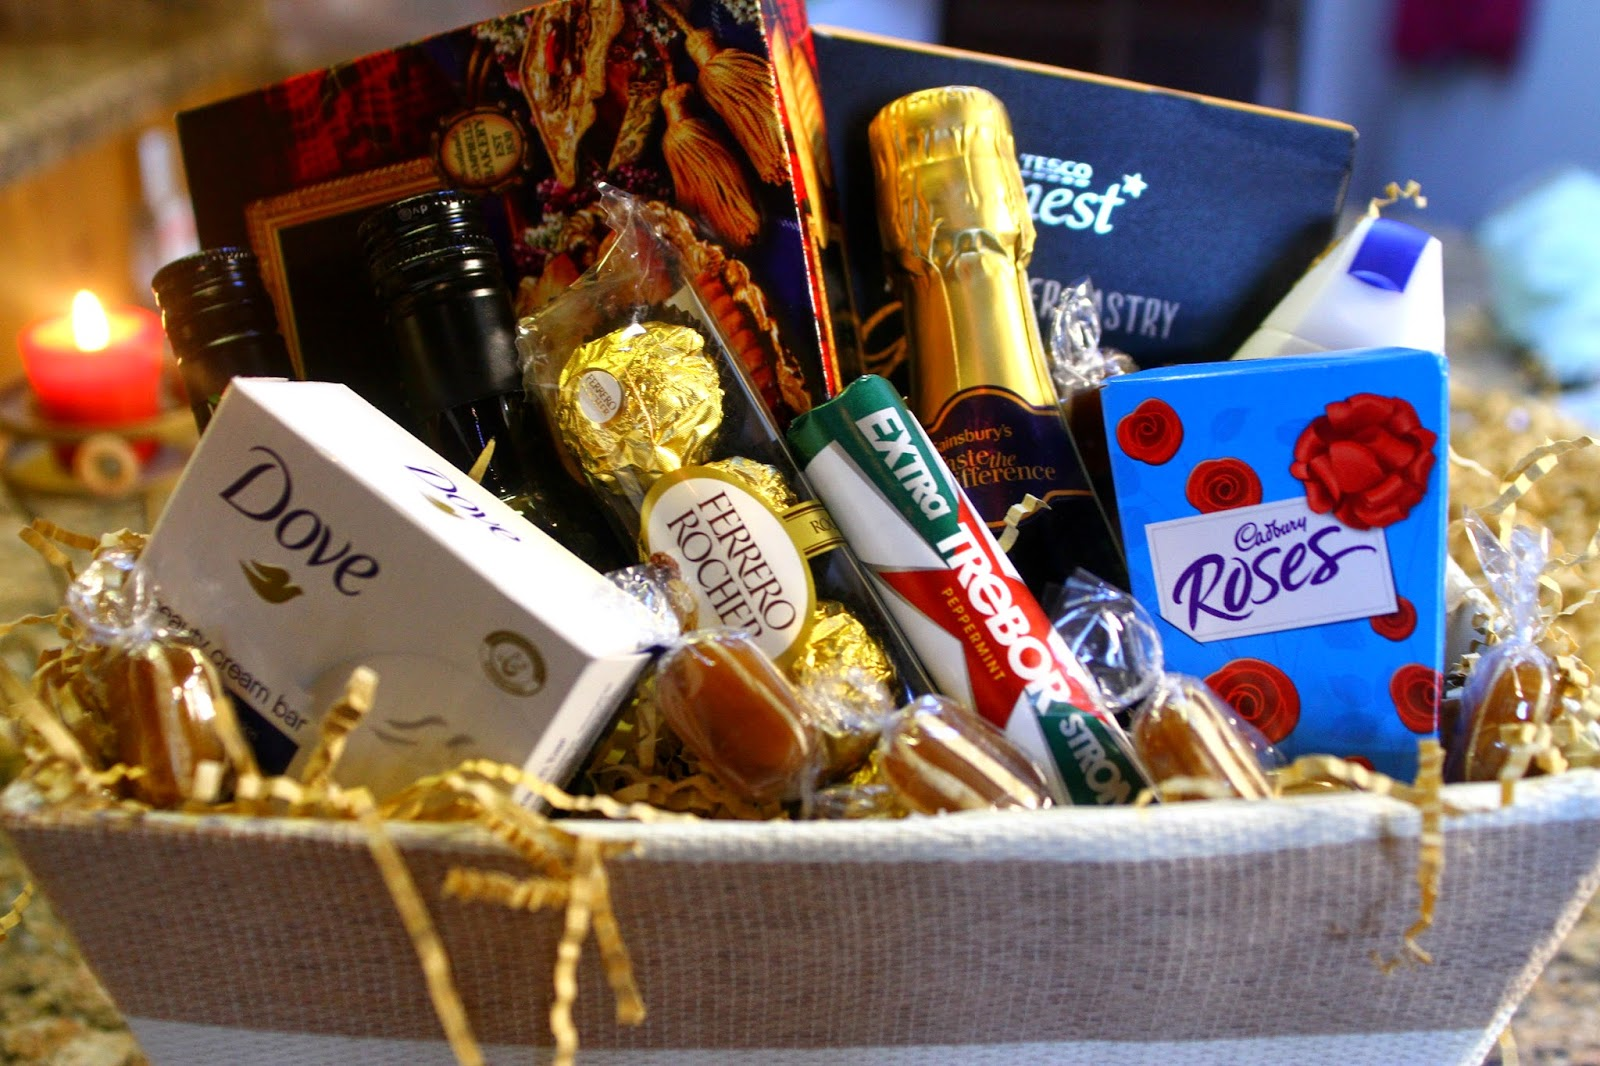 How to make a hamper eltoria wilkinson sell a very handy hamper making kit which comes with cellophane shredded cardboard a bow and a gift tag hamper basket is sold separately negle Choice Image